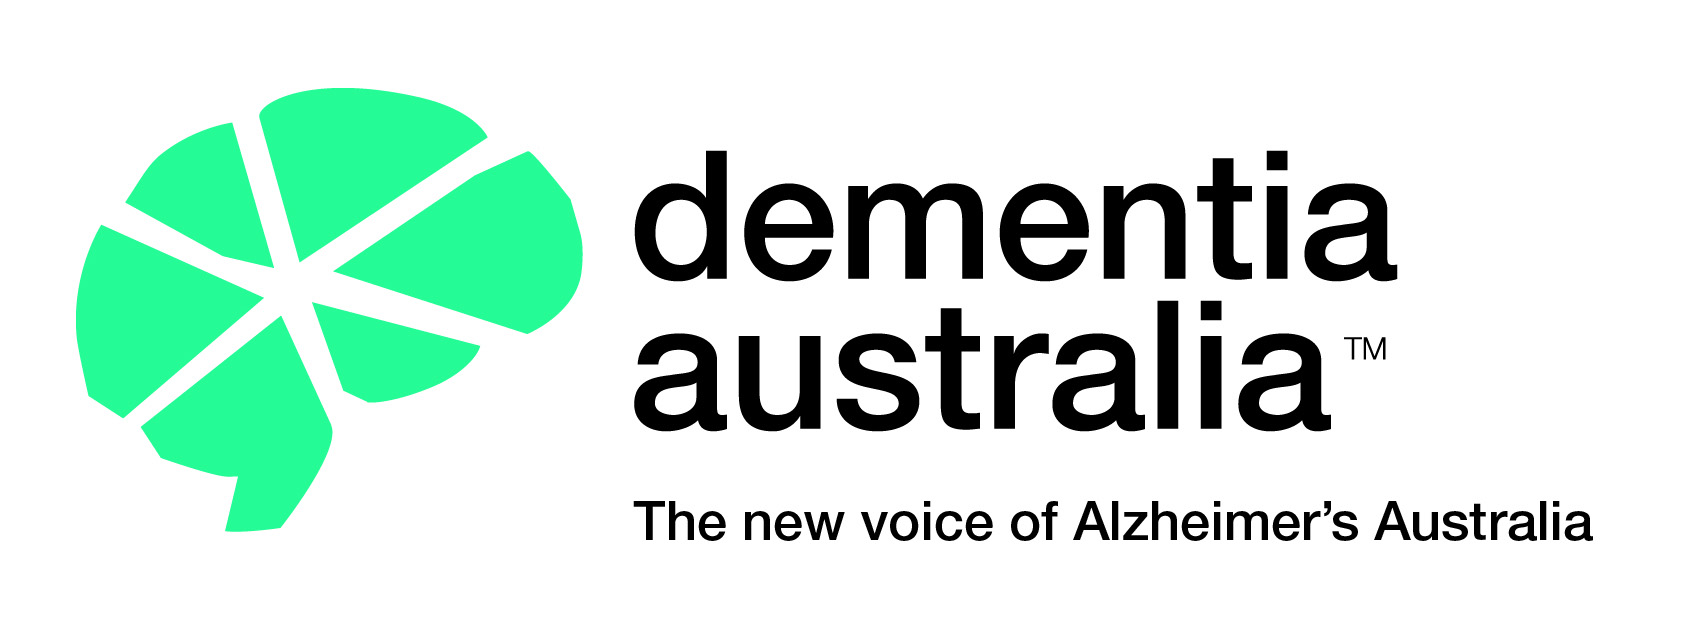 Green brain symbol with the words Dementia Australia